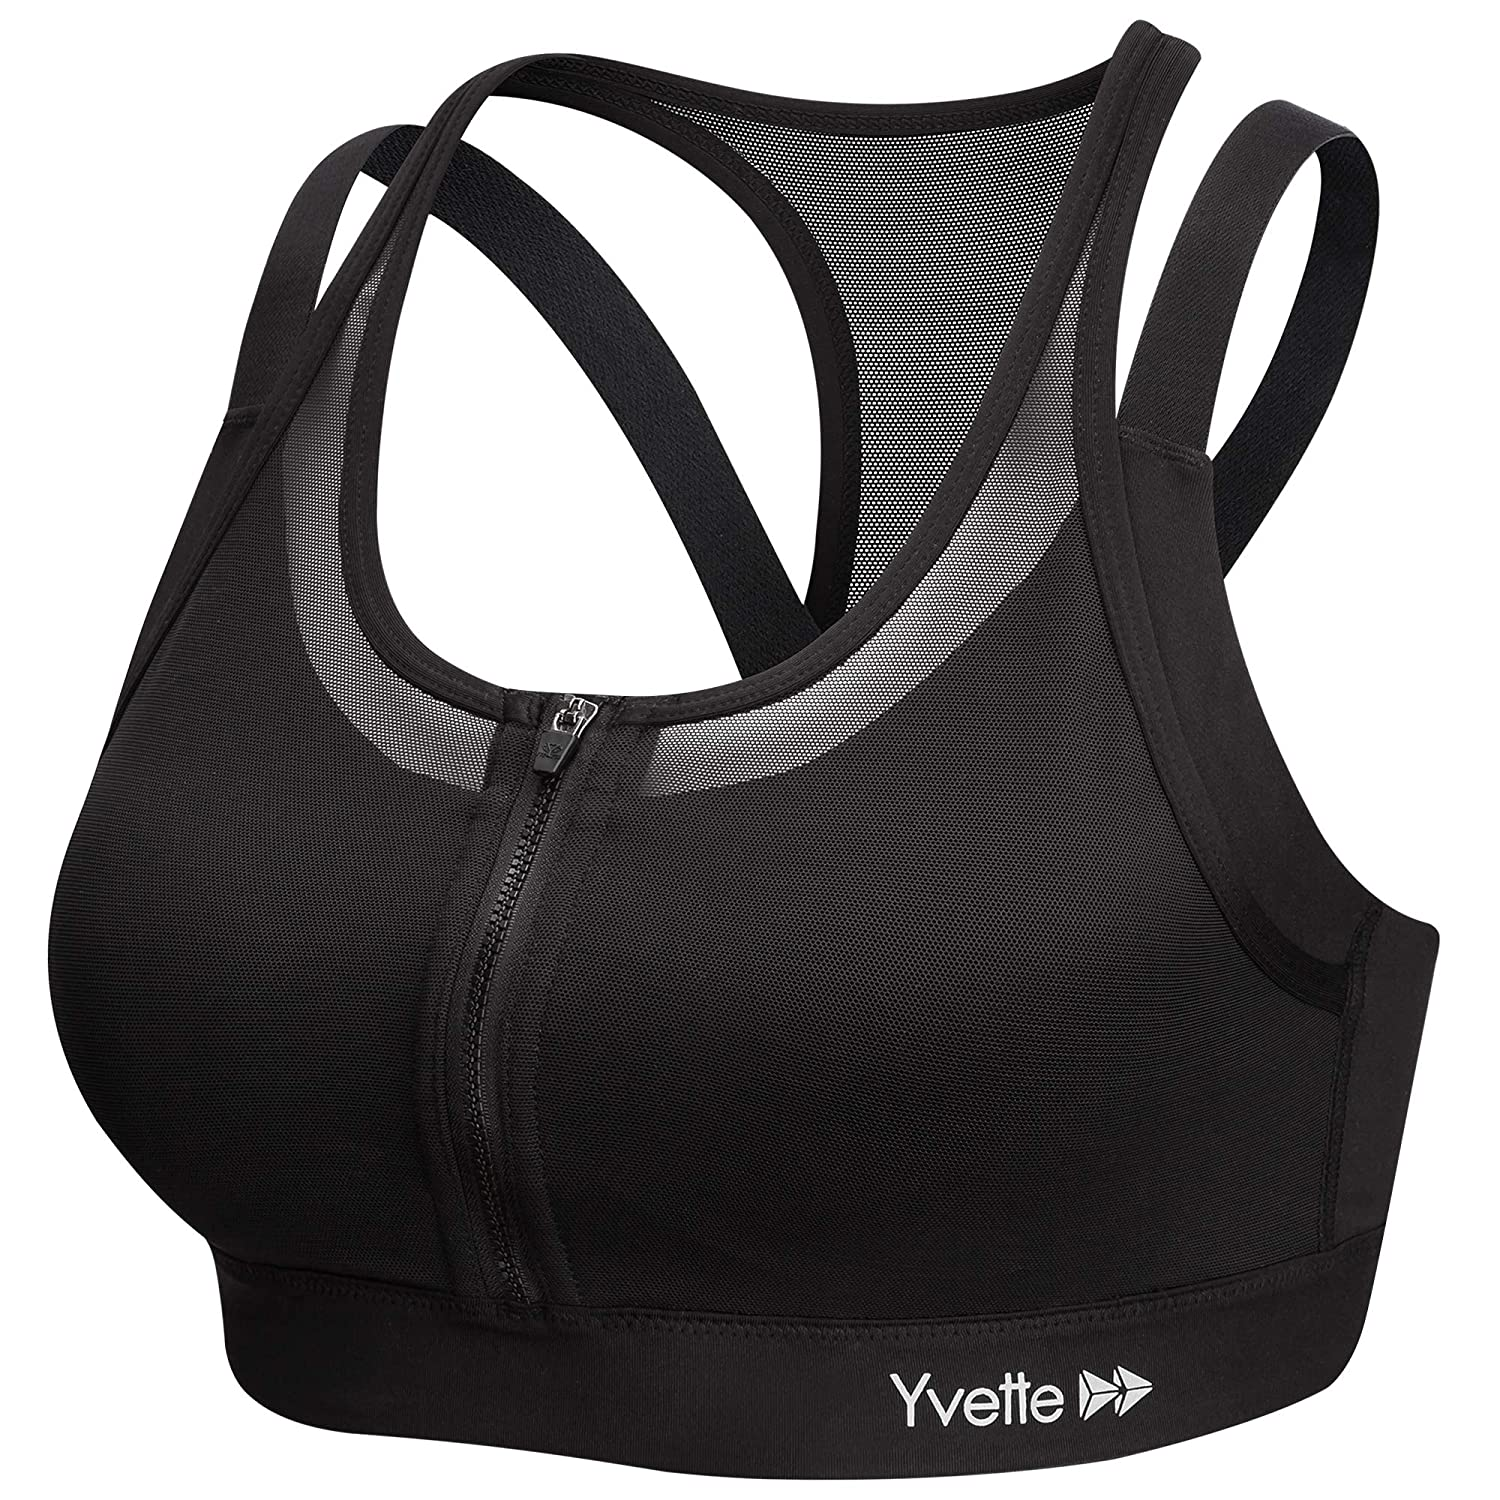 def94324ddd34 Yvette Sports Bra Women Zip Front High Impact No Bounce Wirefree Workout Bra  for Large Busts at Amazon Women s Clothing store